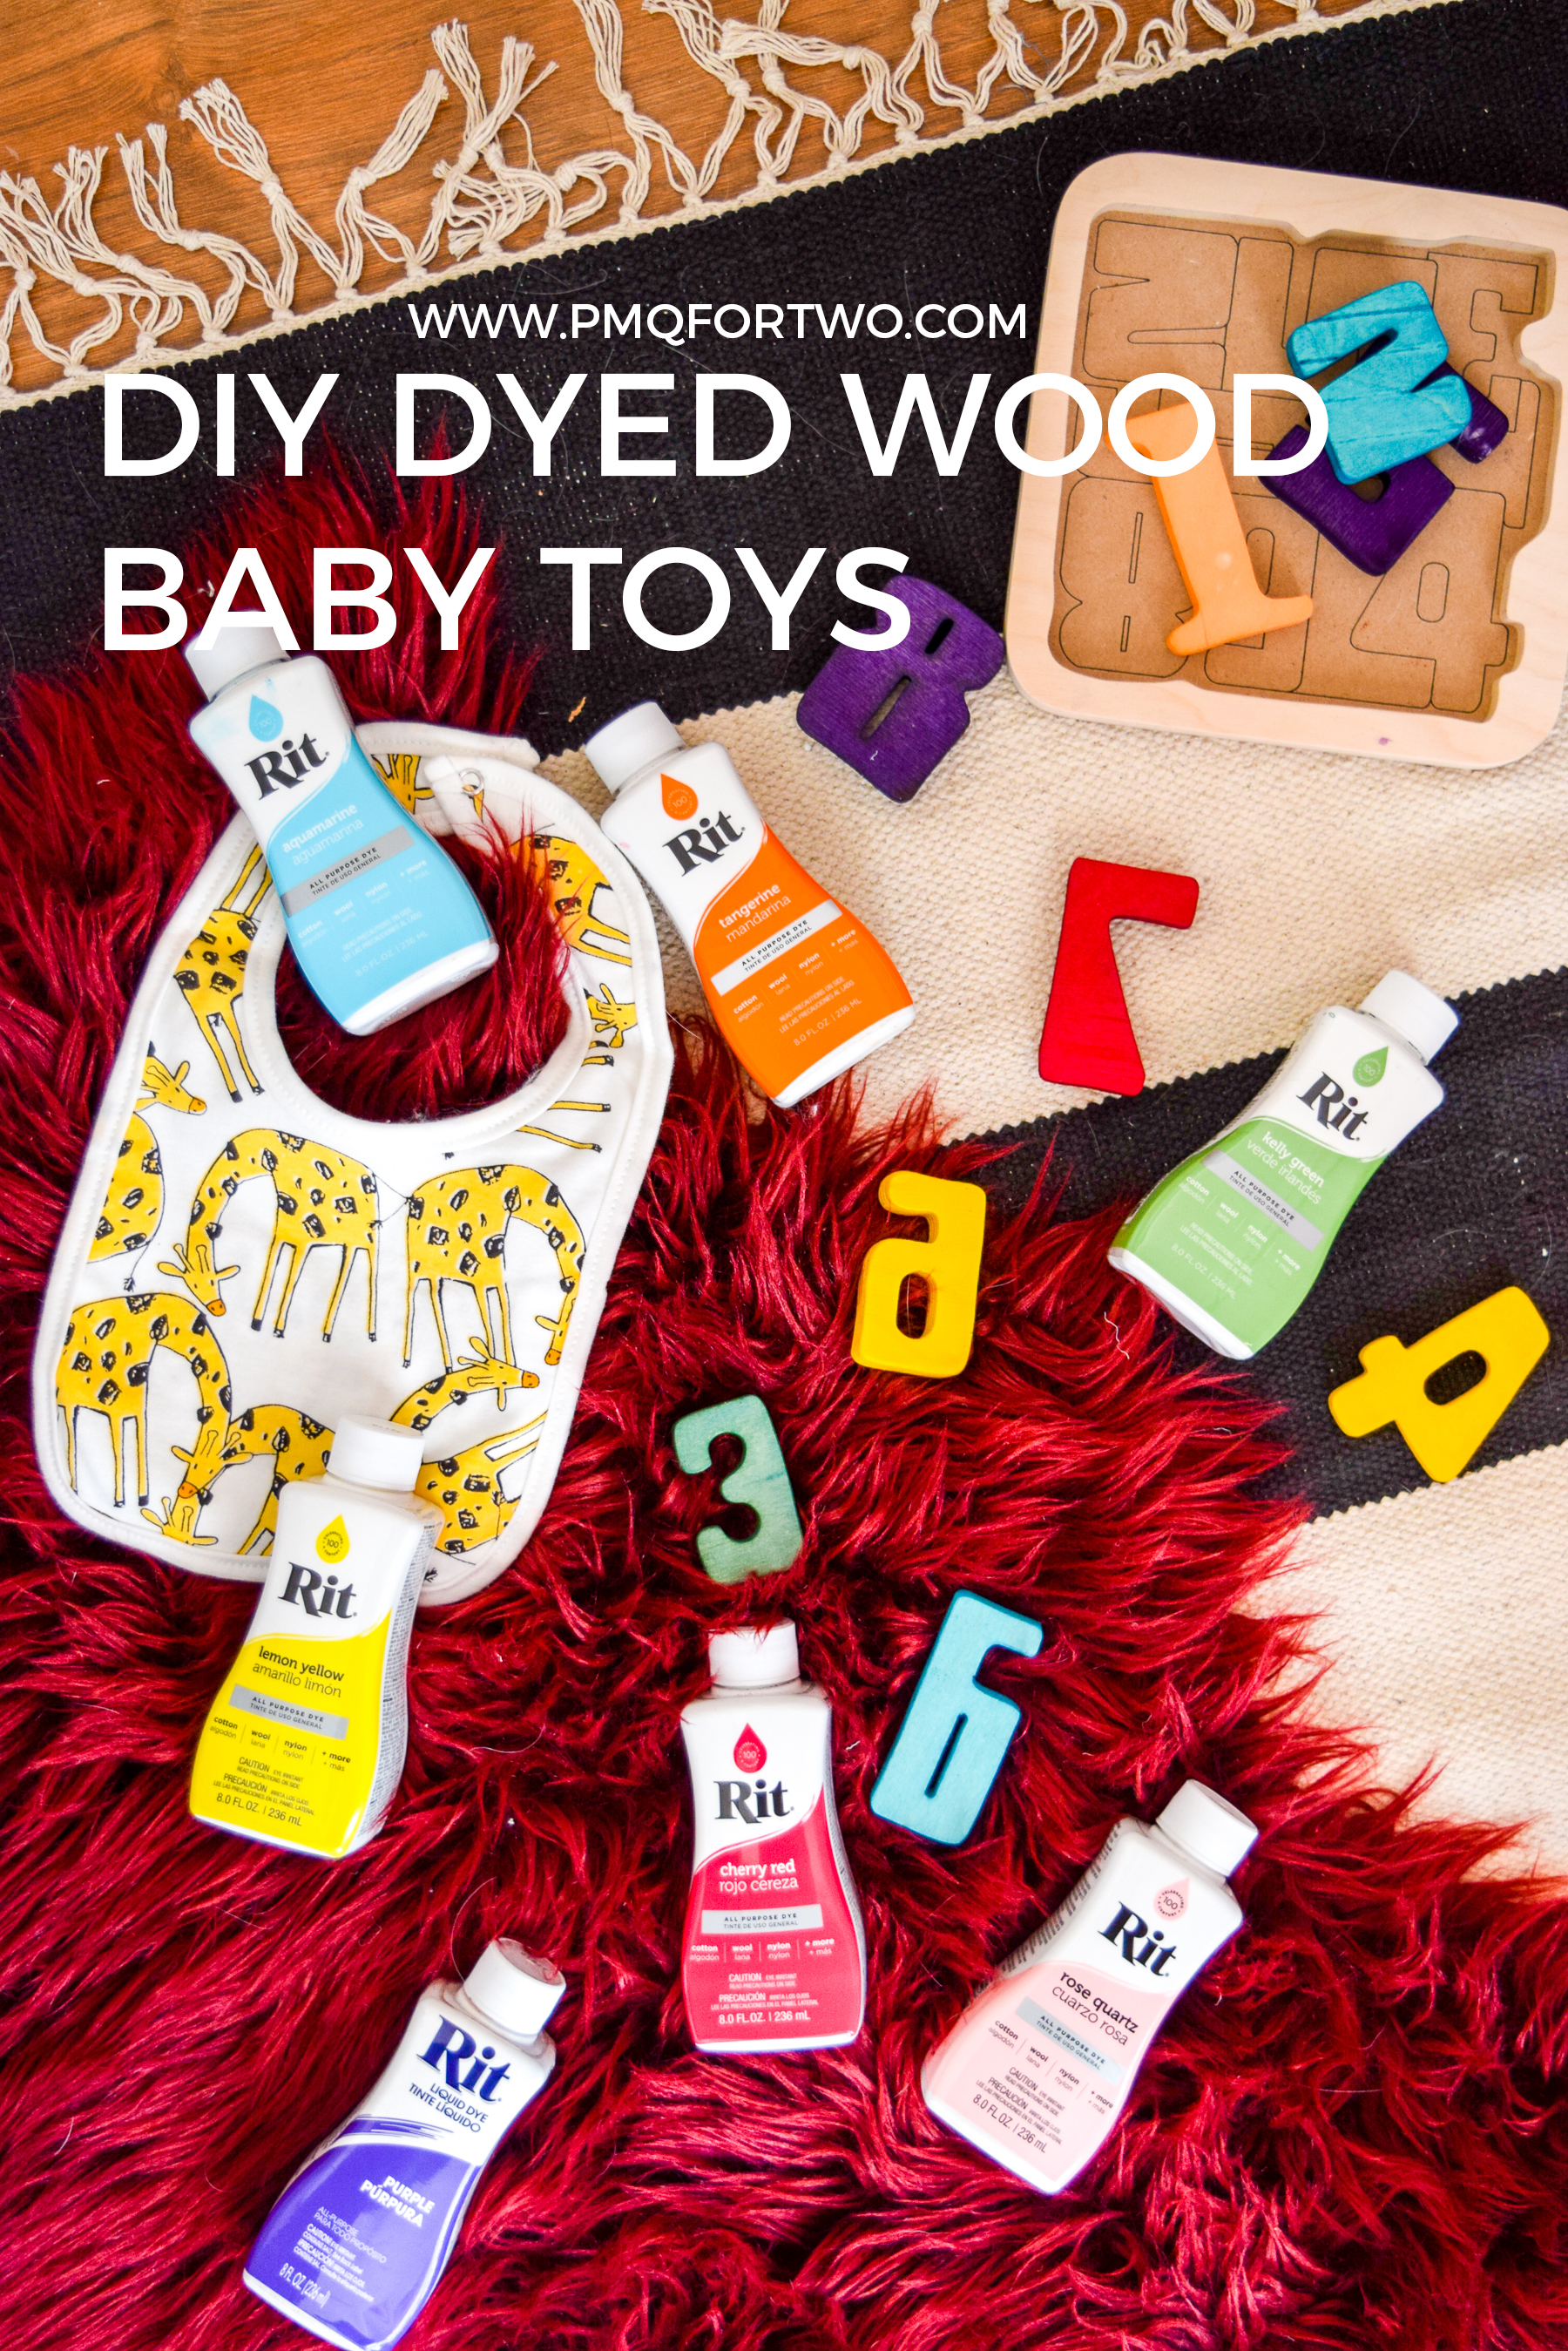 Dye natural wood toys to create one of a kind, colourful pieces as gifts, or for your own kid! Dying wood is easier than you think.